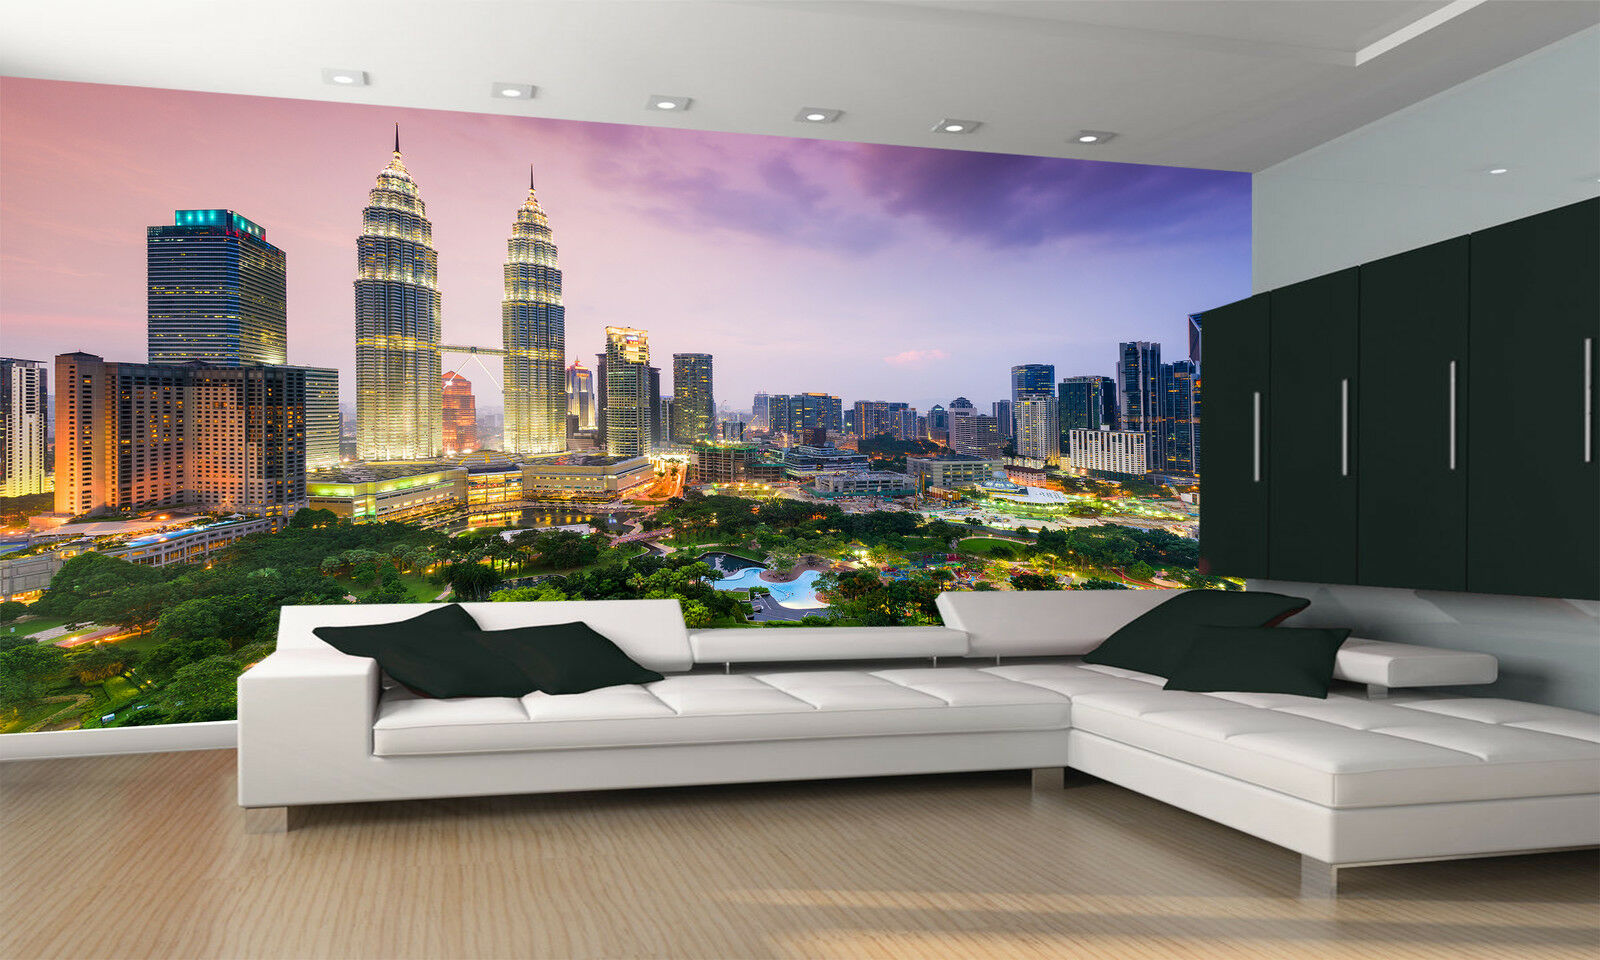 Photo Wallpaper Kuala Lumpur Skyline GIANT WALL DECOR PAPER POSTER FOR BEDROOM